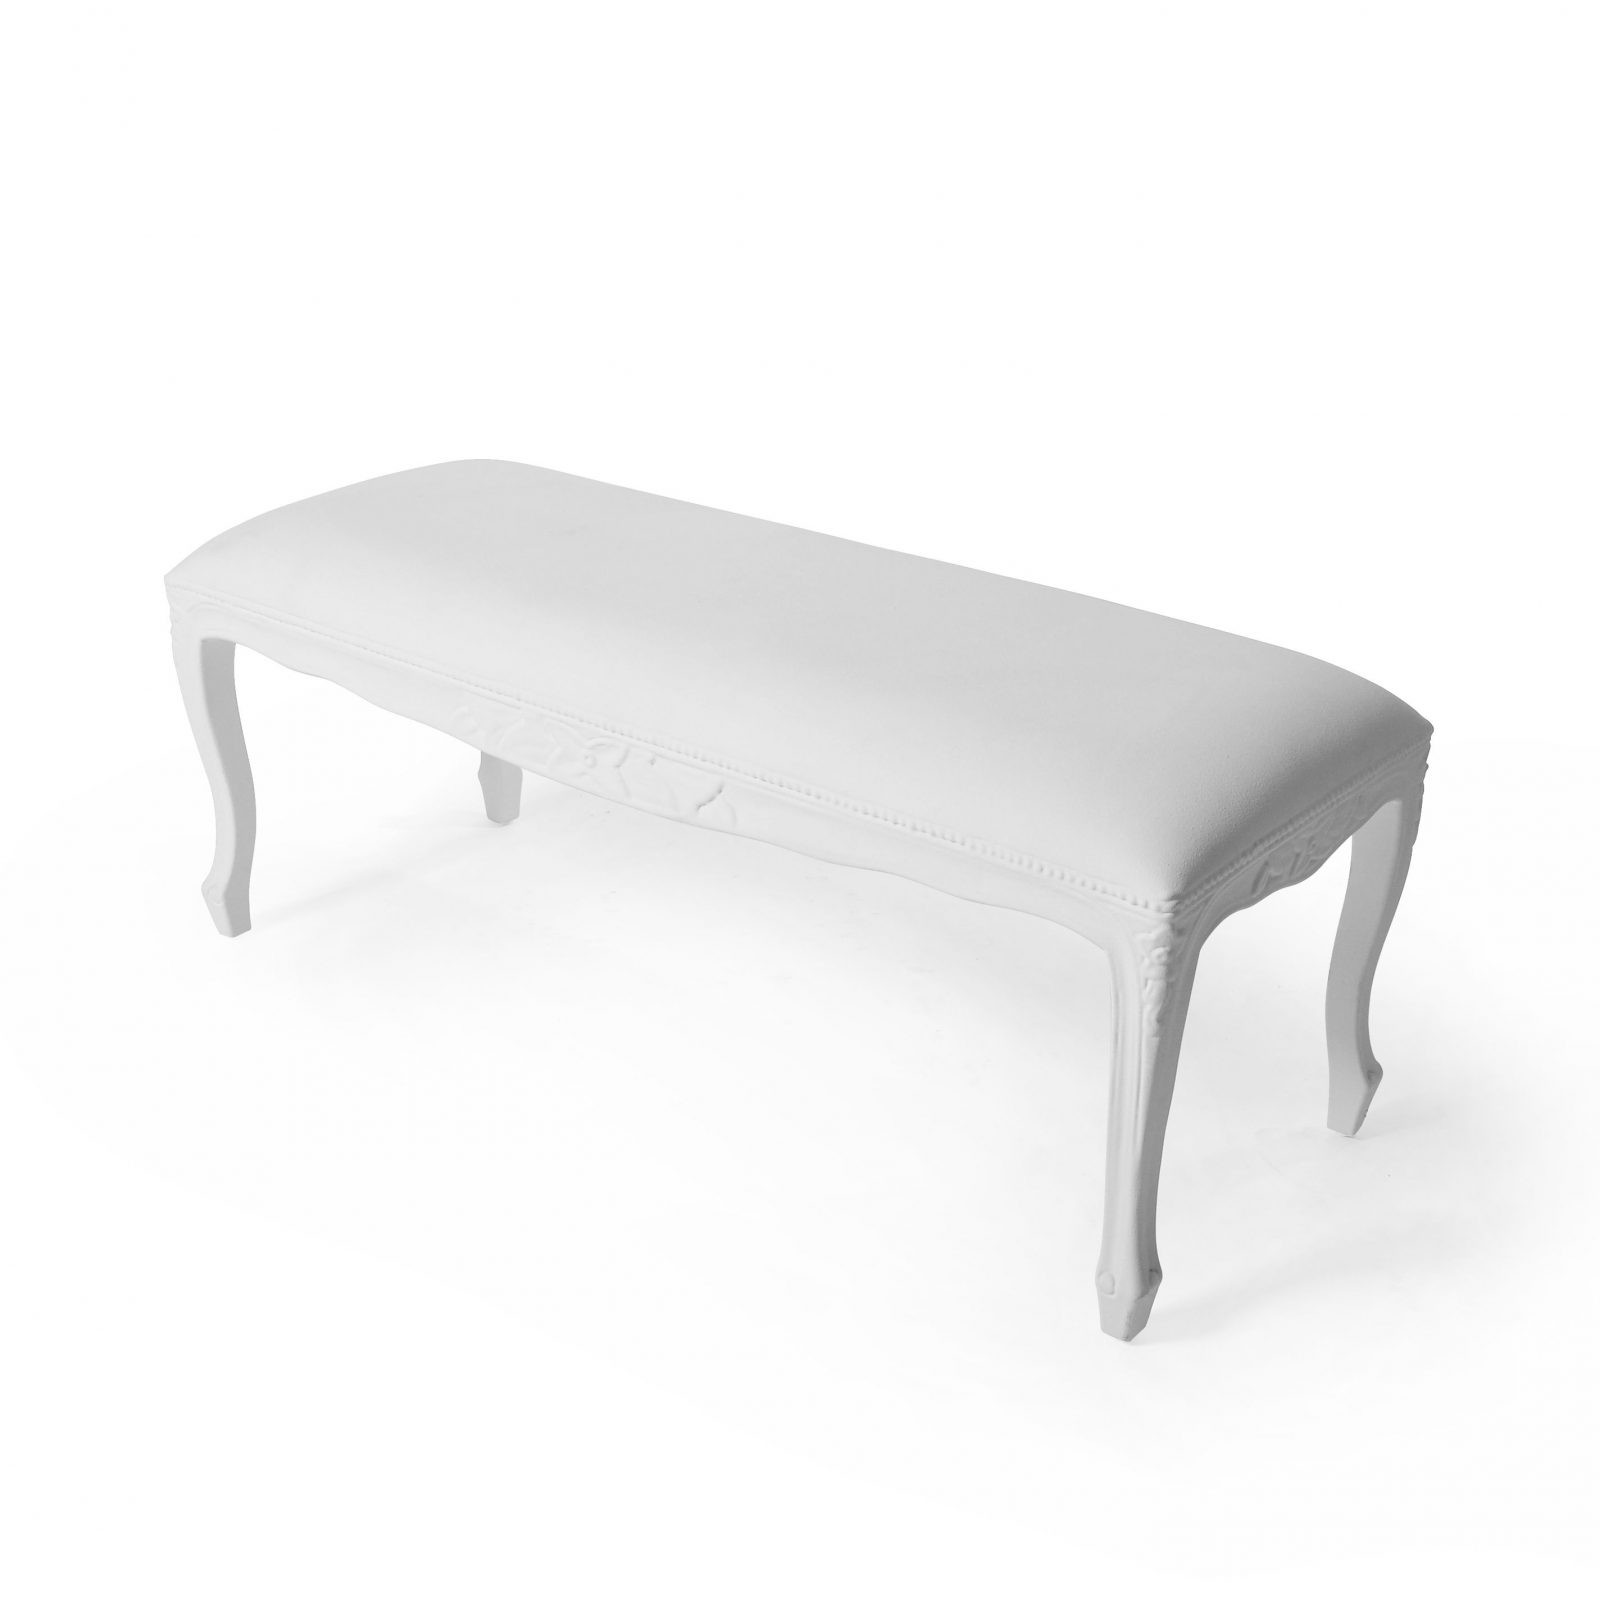 Looking for JSPR Plastic Fantastic furniture Shop online at The